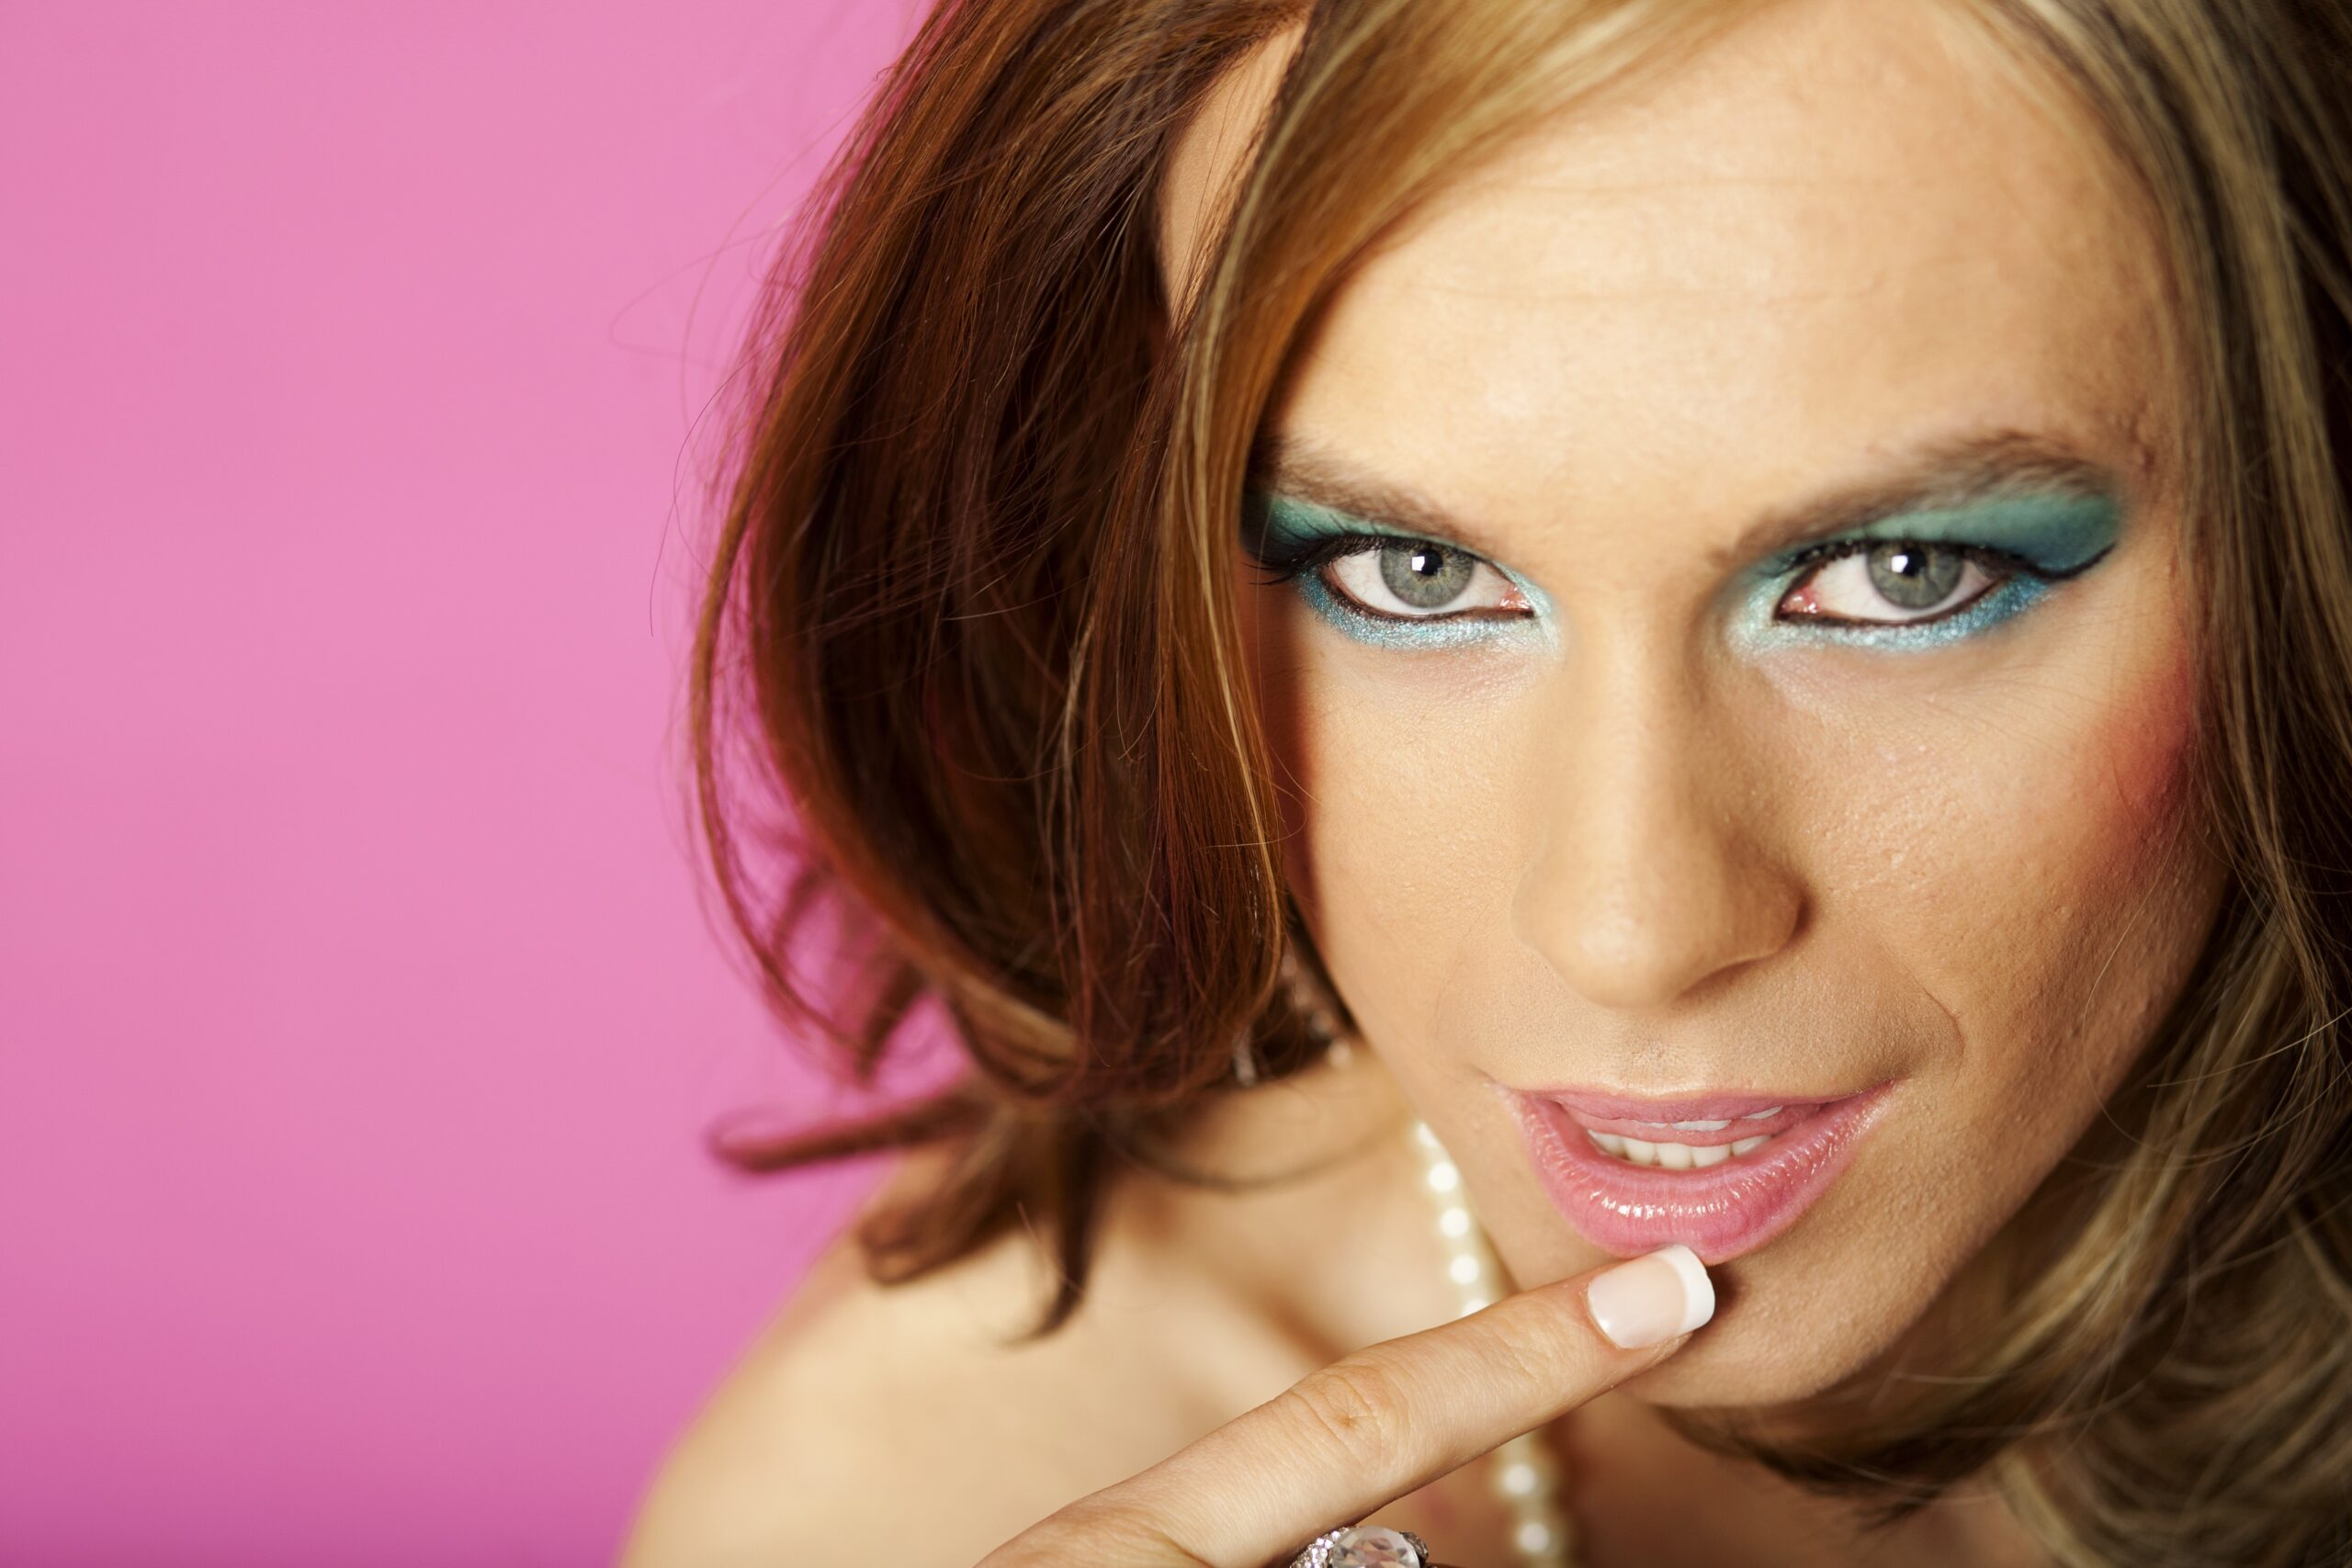 You are currently viewing Sissy Hypnosis: What is Sissy Hypnosis Audio & Why is it So Popular?